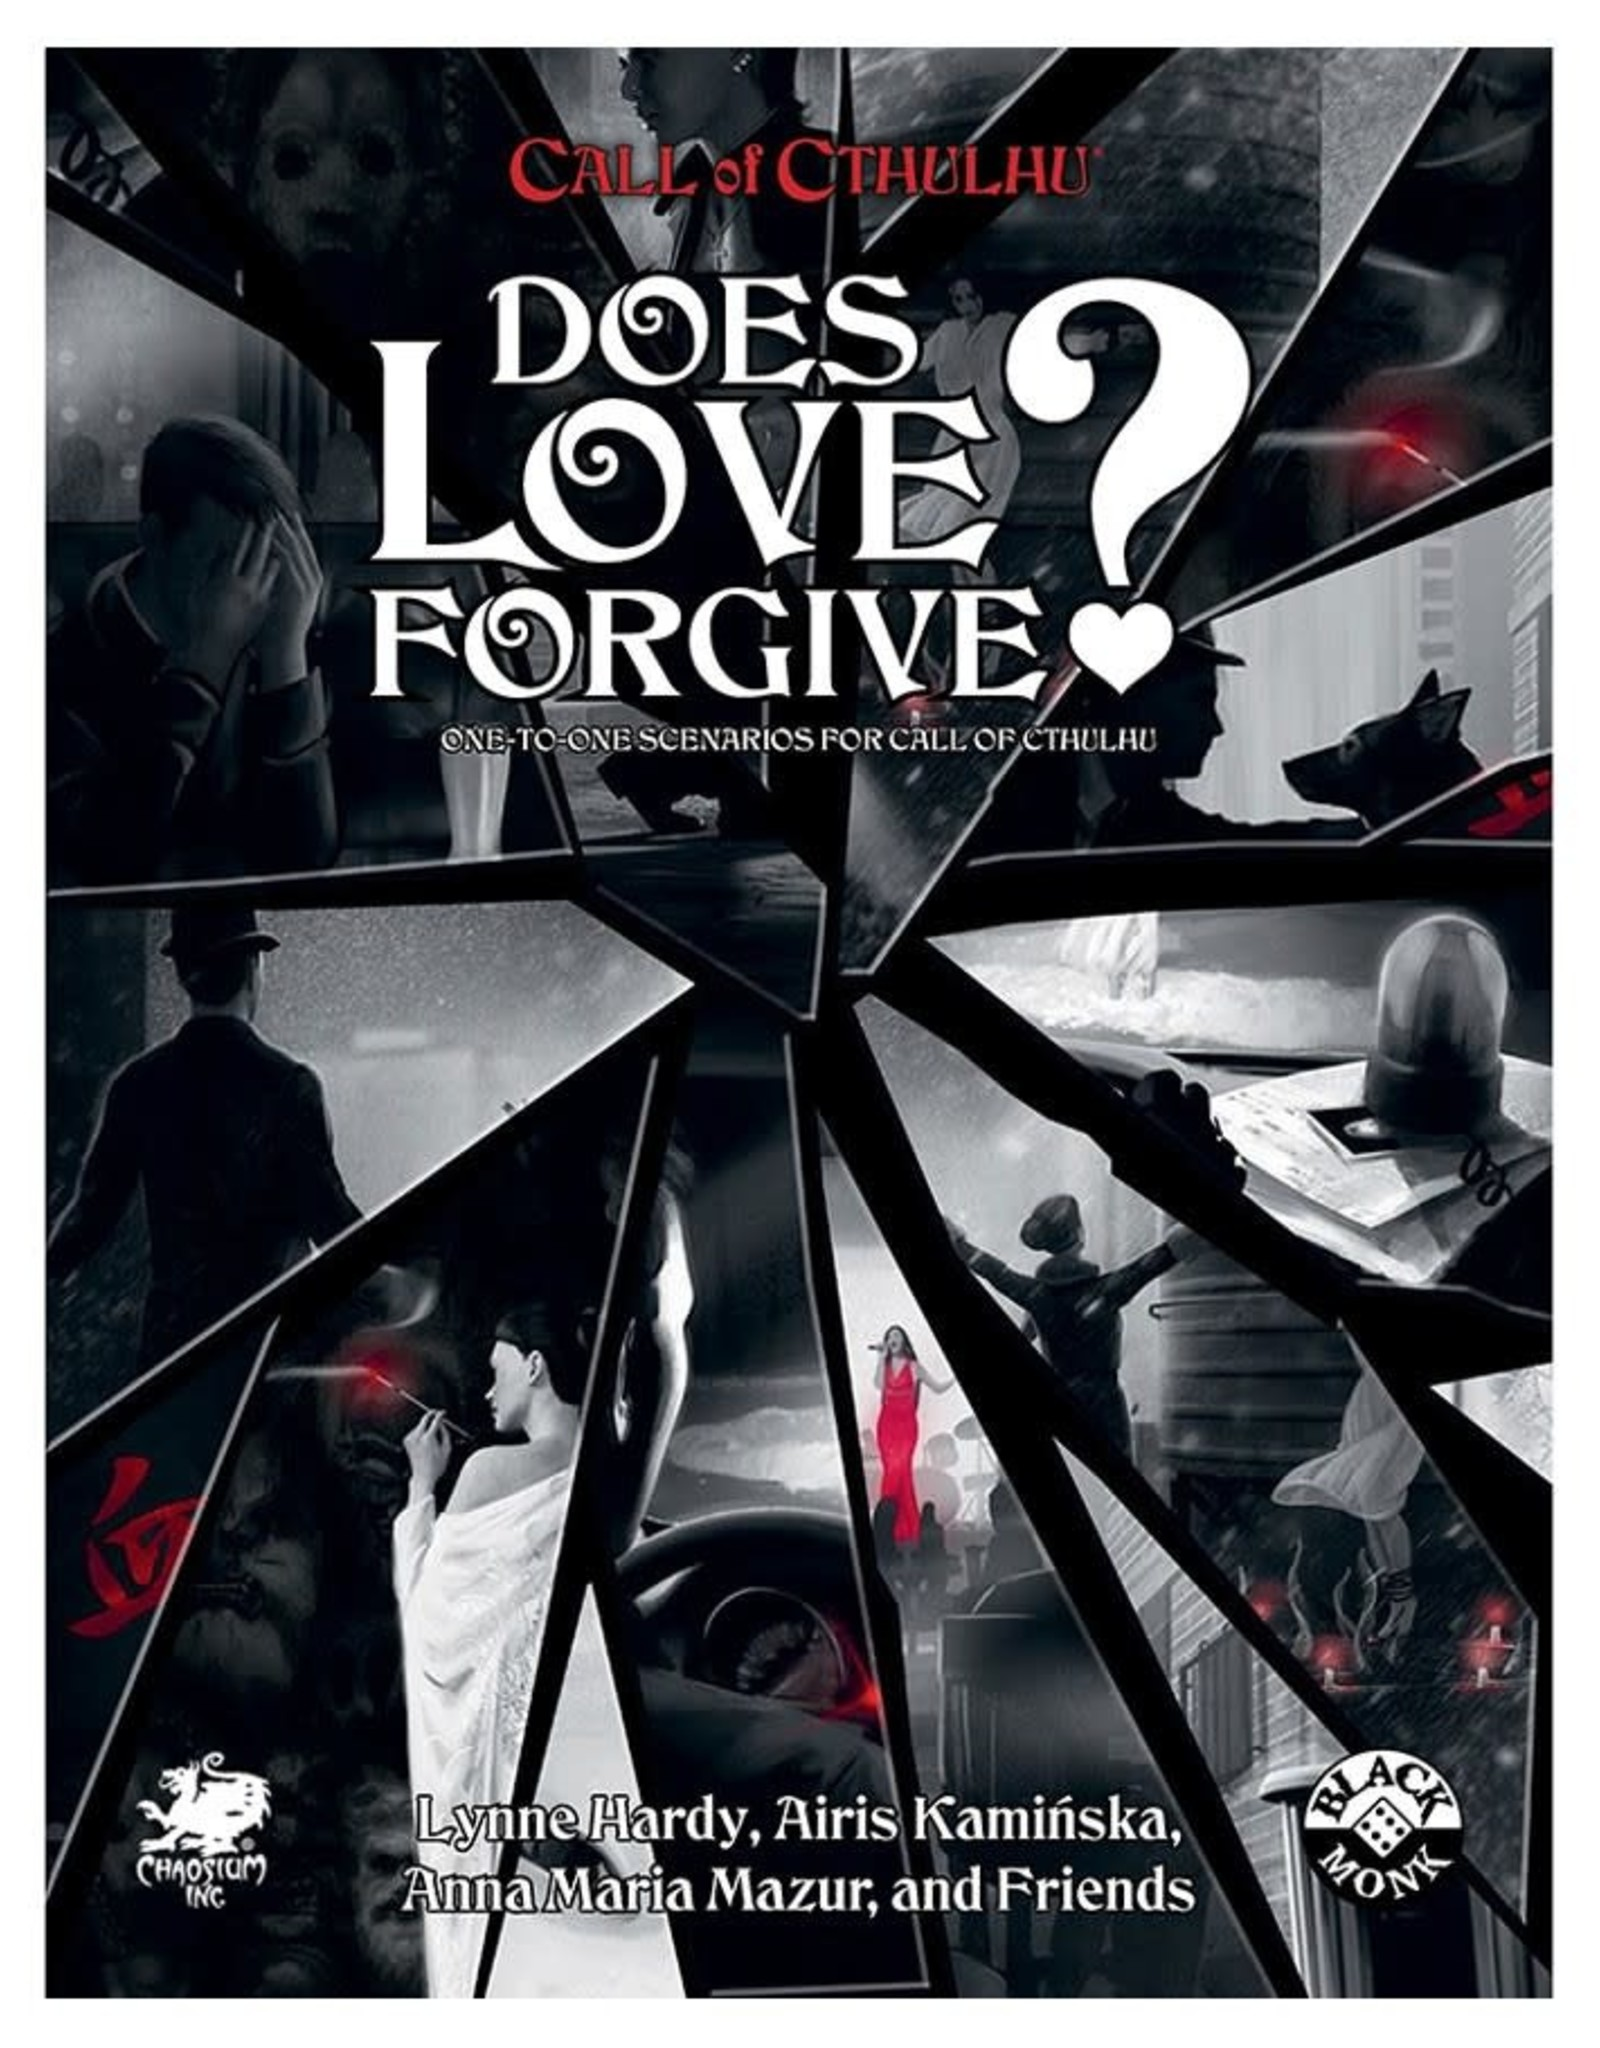 Chaosium Call of Cthulhu RPG: Does Love Forgive?